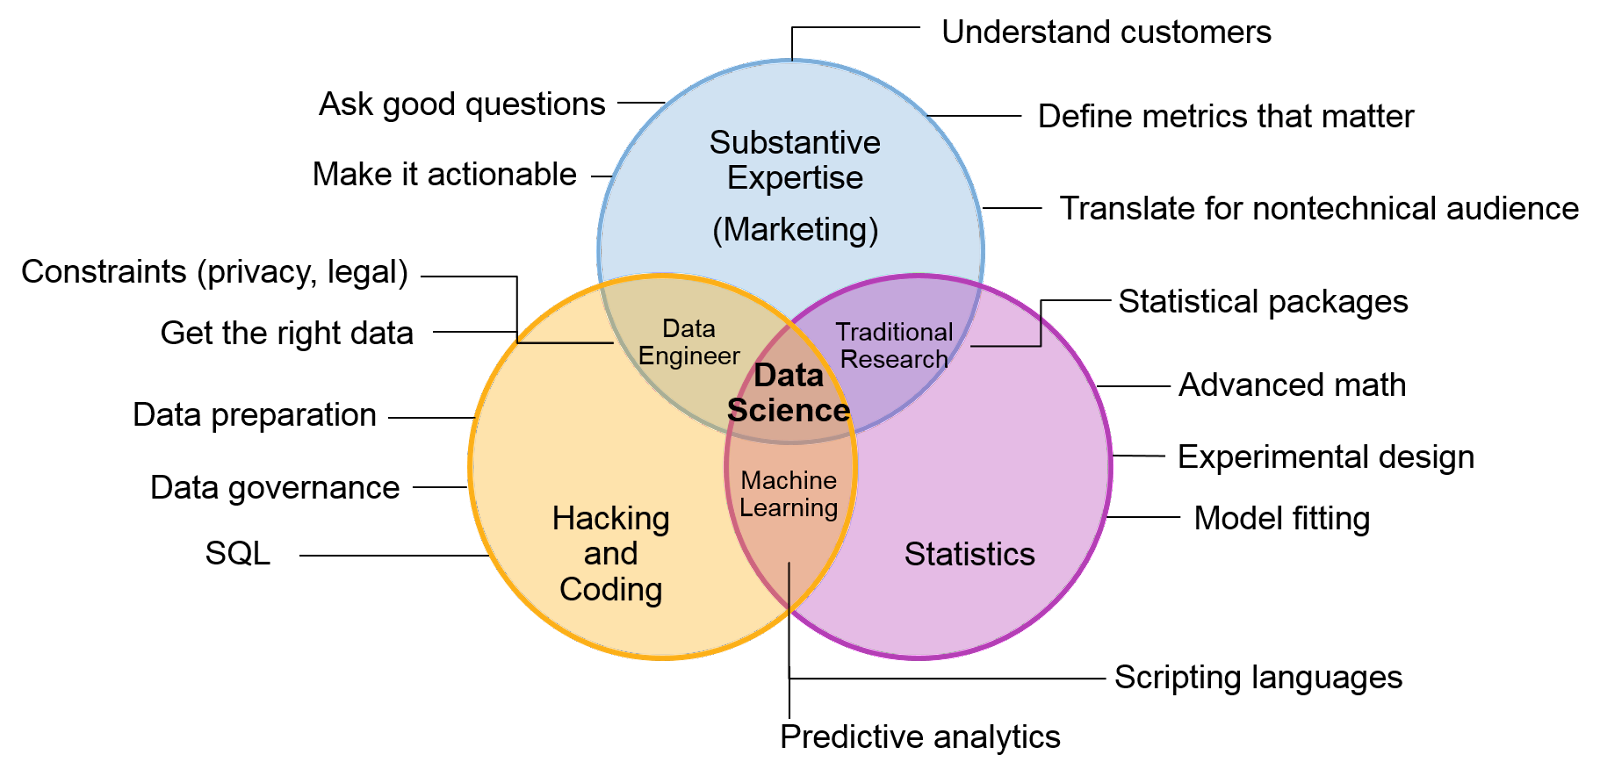 datascience_skills_venn_diagram